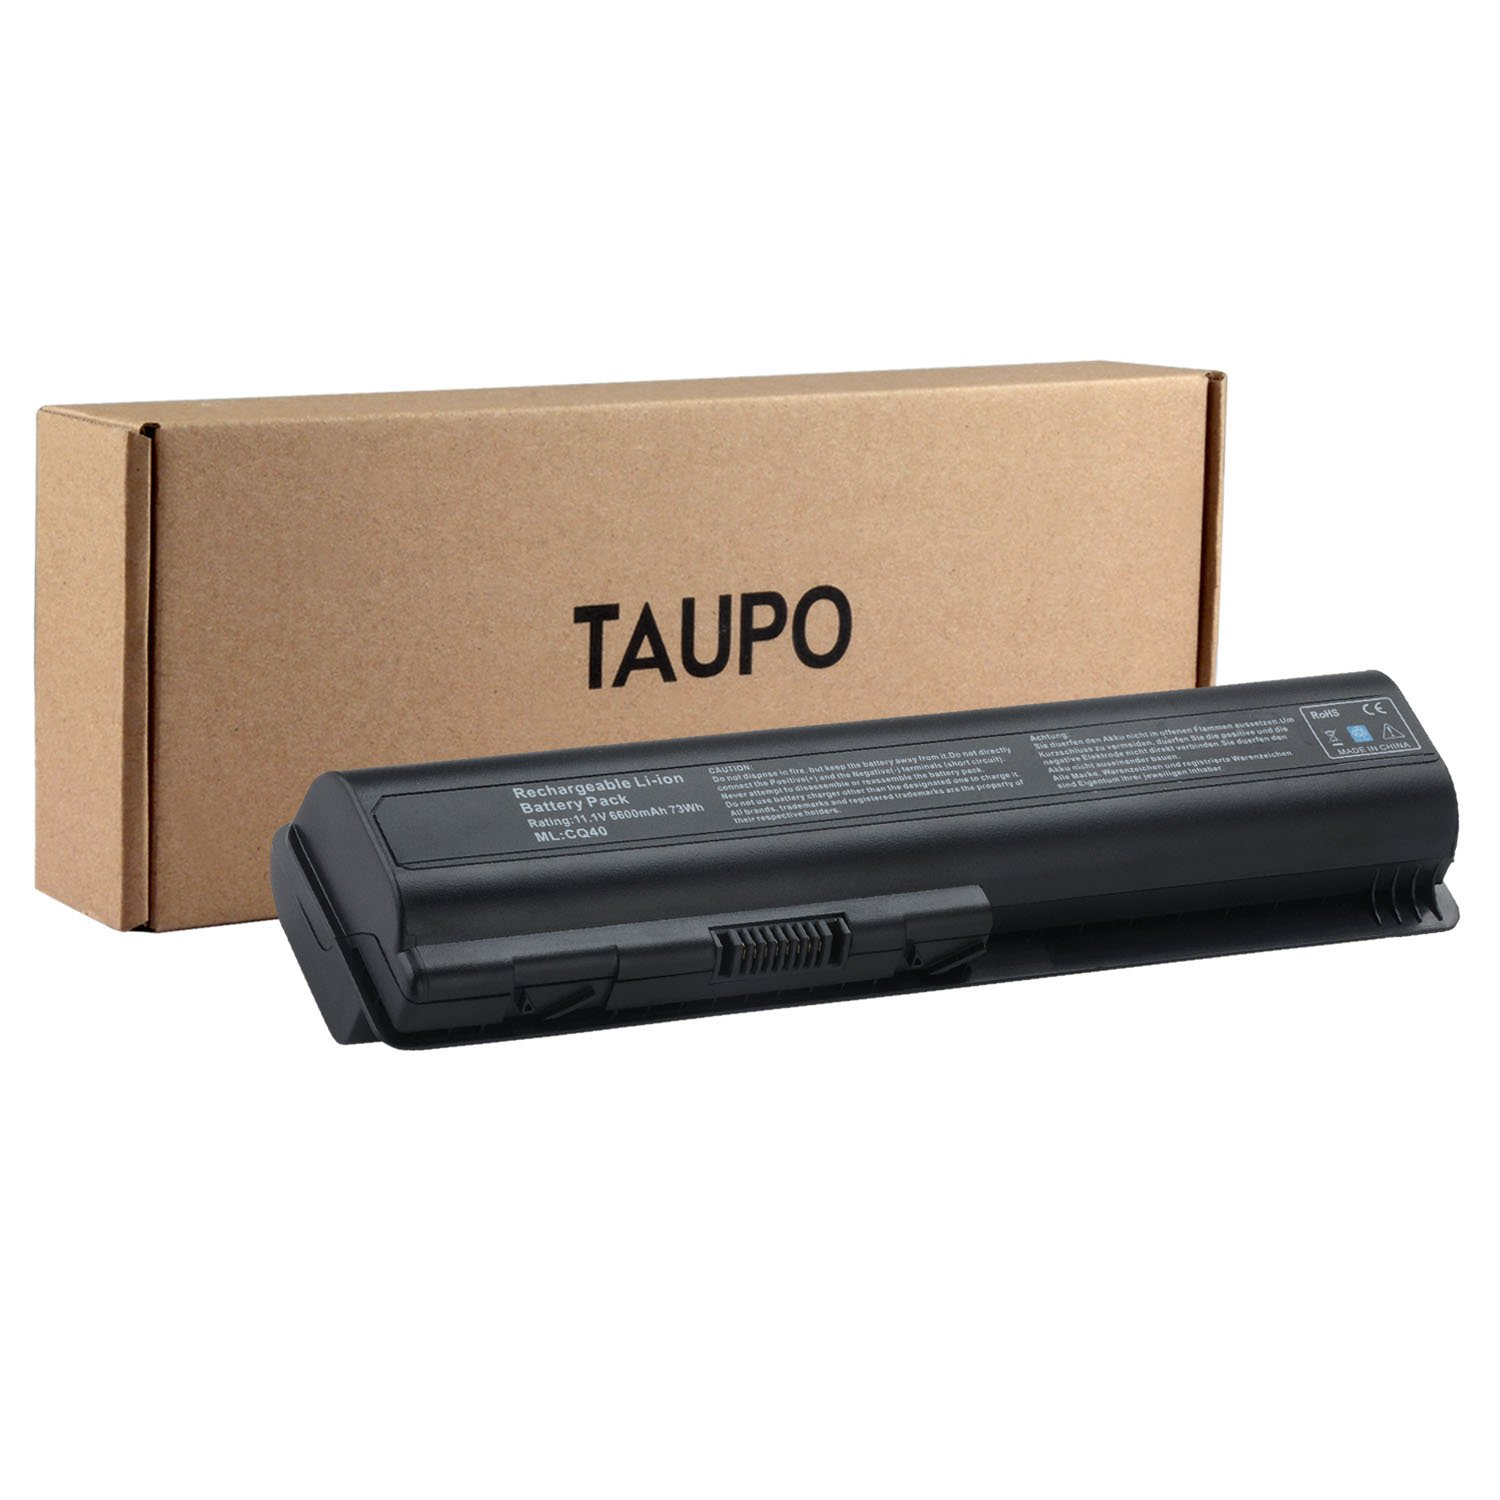 TAUPO 9-Cell Extended Laptop Battery for HP Pavilion DV4-1000 DV4-2000 DV5-1000 DV6-1000 DV6-2000 CQ40 CQ50 CQ60 CQ70 G50 G60 G60T G61 G70 G71 Series, Fits 484170-001 EV06 KS524AA KS526AA HSTNN-IB72